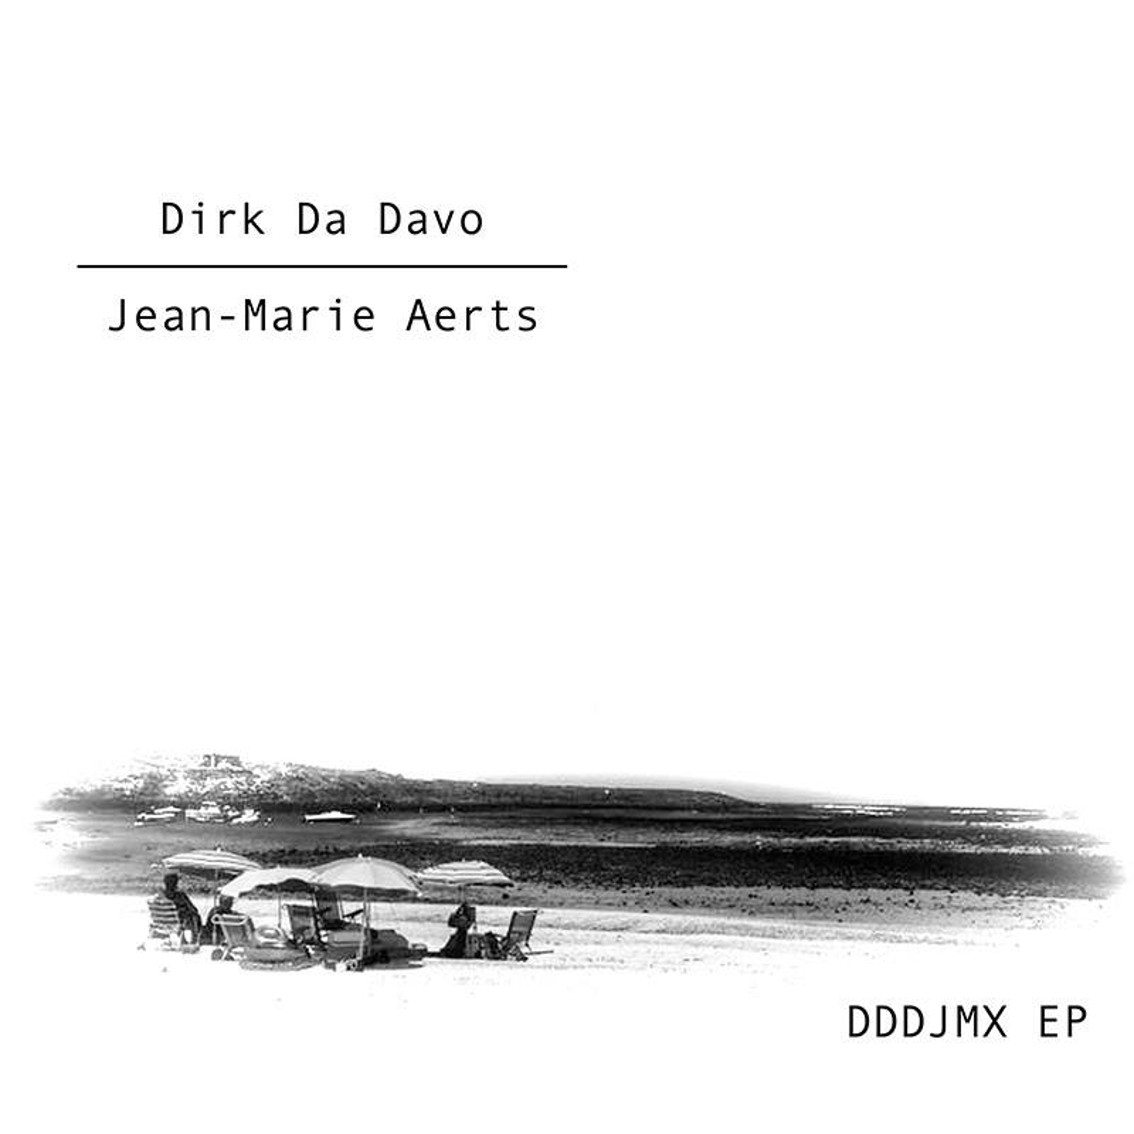 Dirk Da Davo (Neon Judgment) joins up with Belgian cult musician Jean-Marie Aerts (TC Matic) to release'DDD JMX EP'